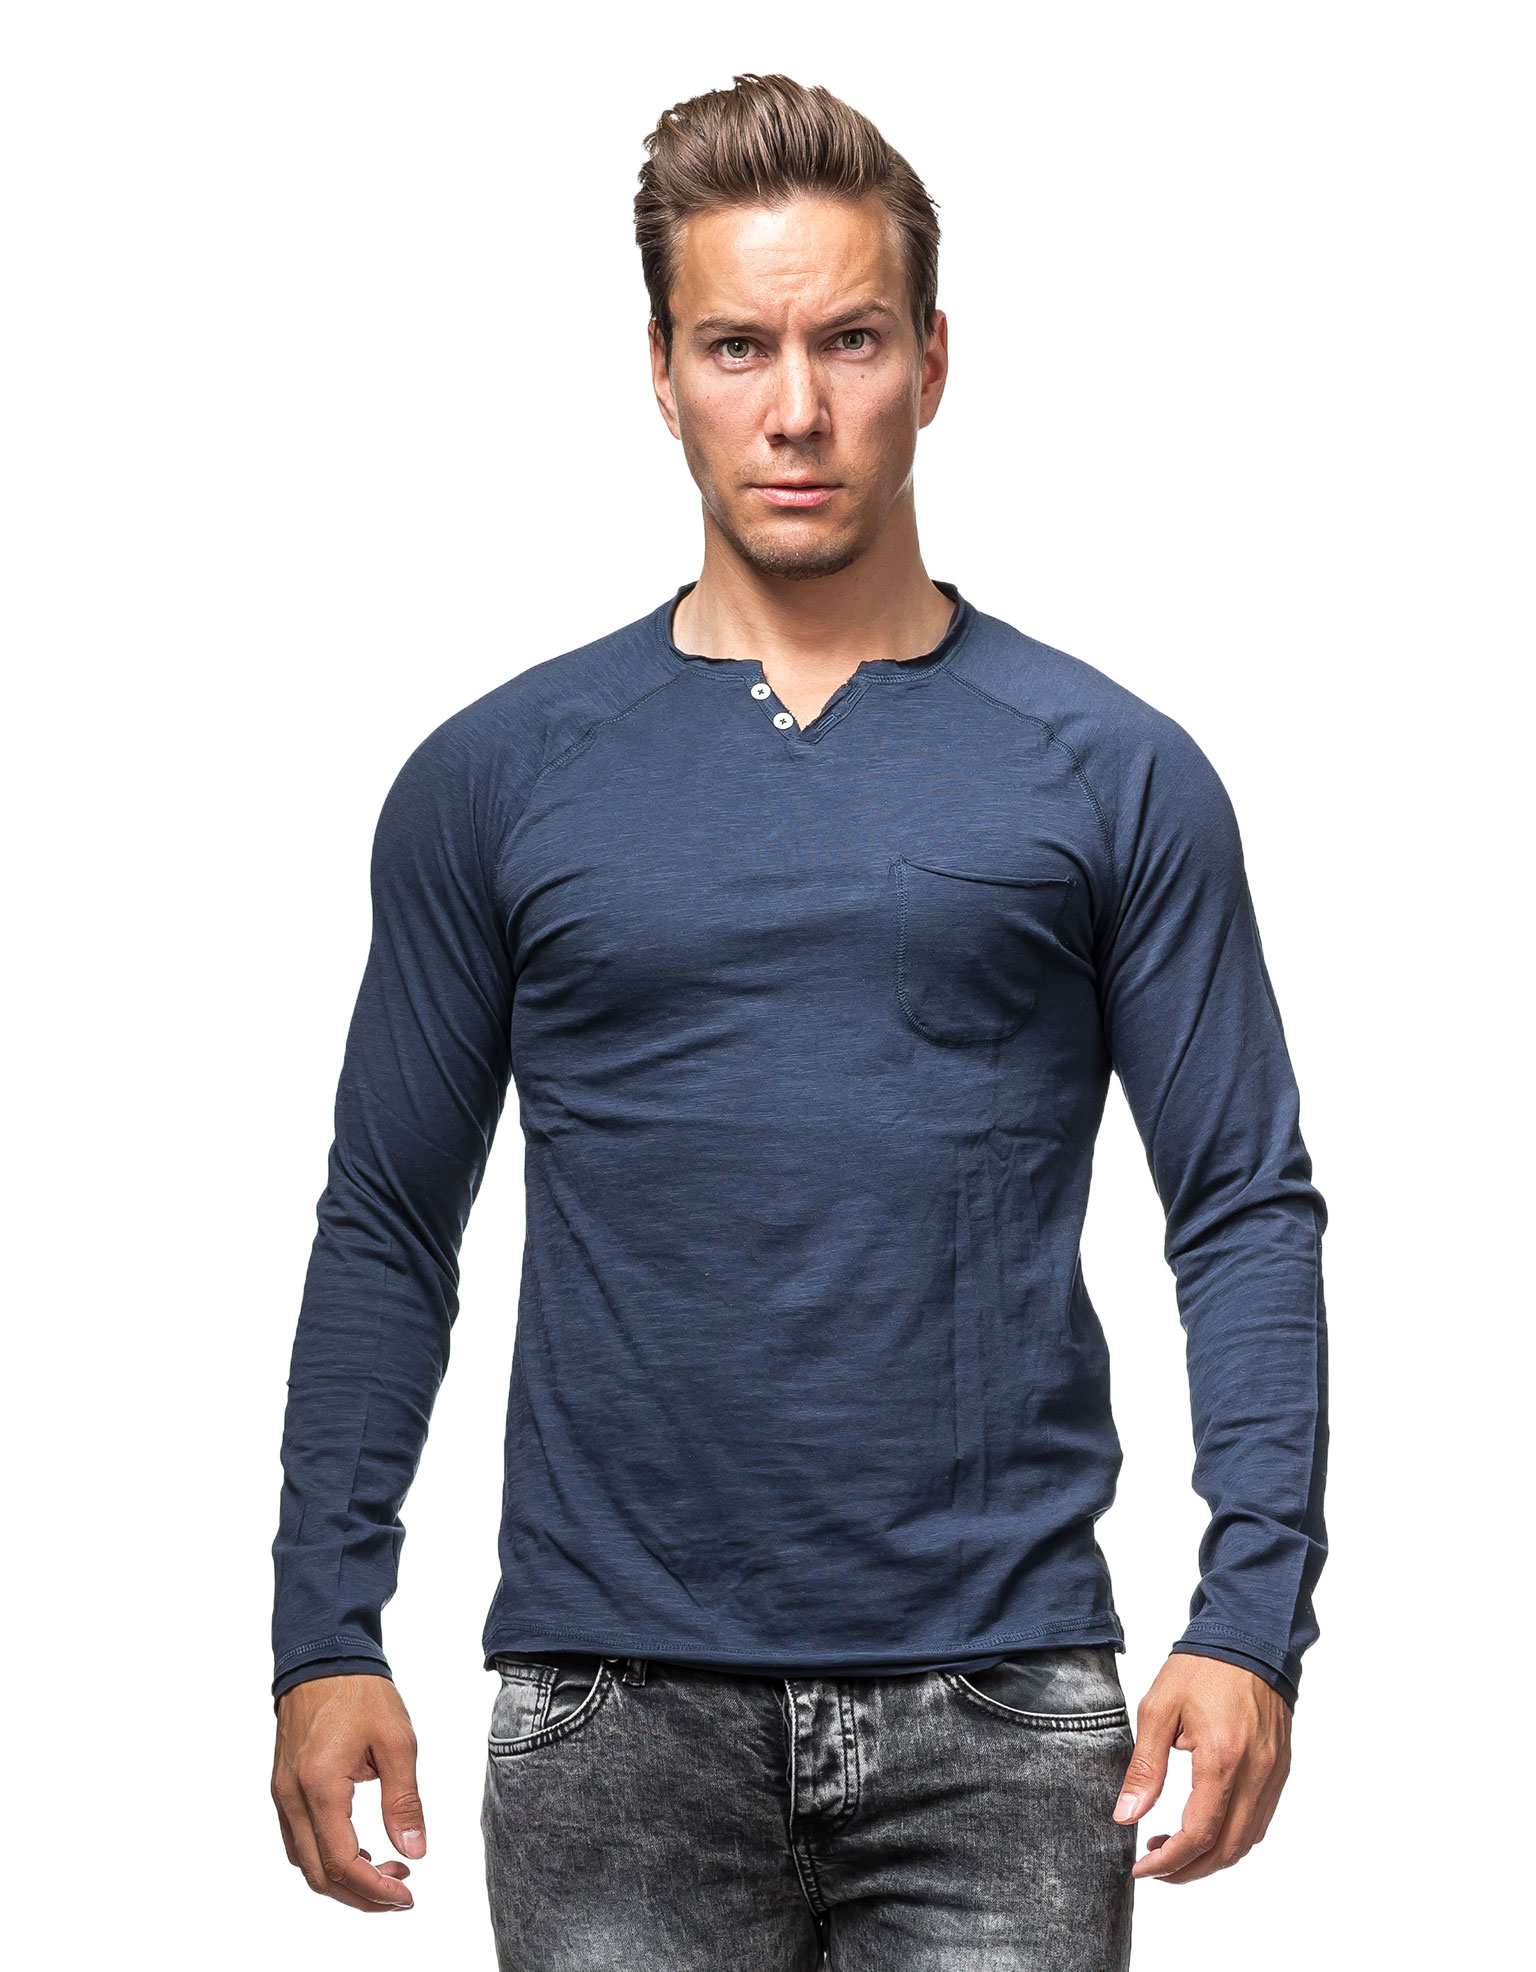 Tom Atilor Henley Blue Tom Tailor 1264 - 1264 - Jerone.com